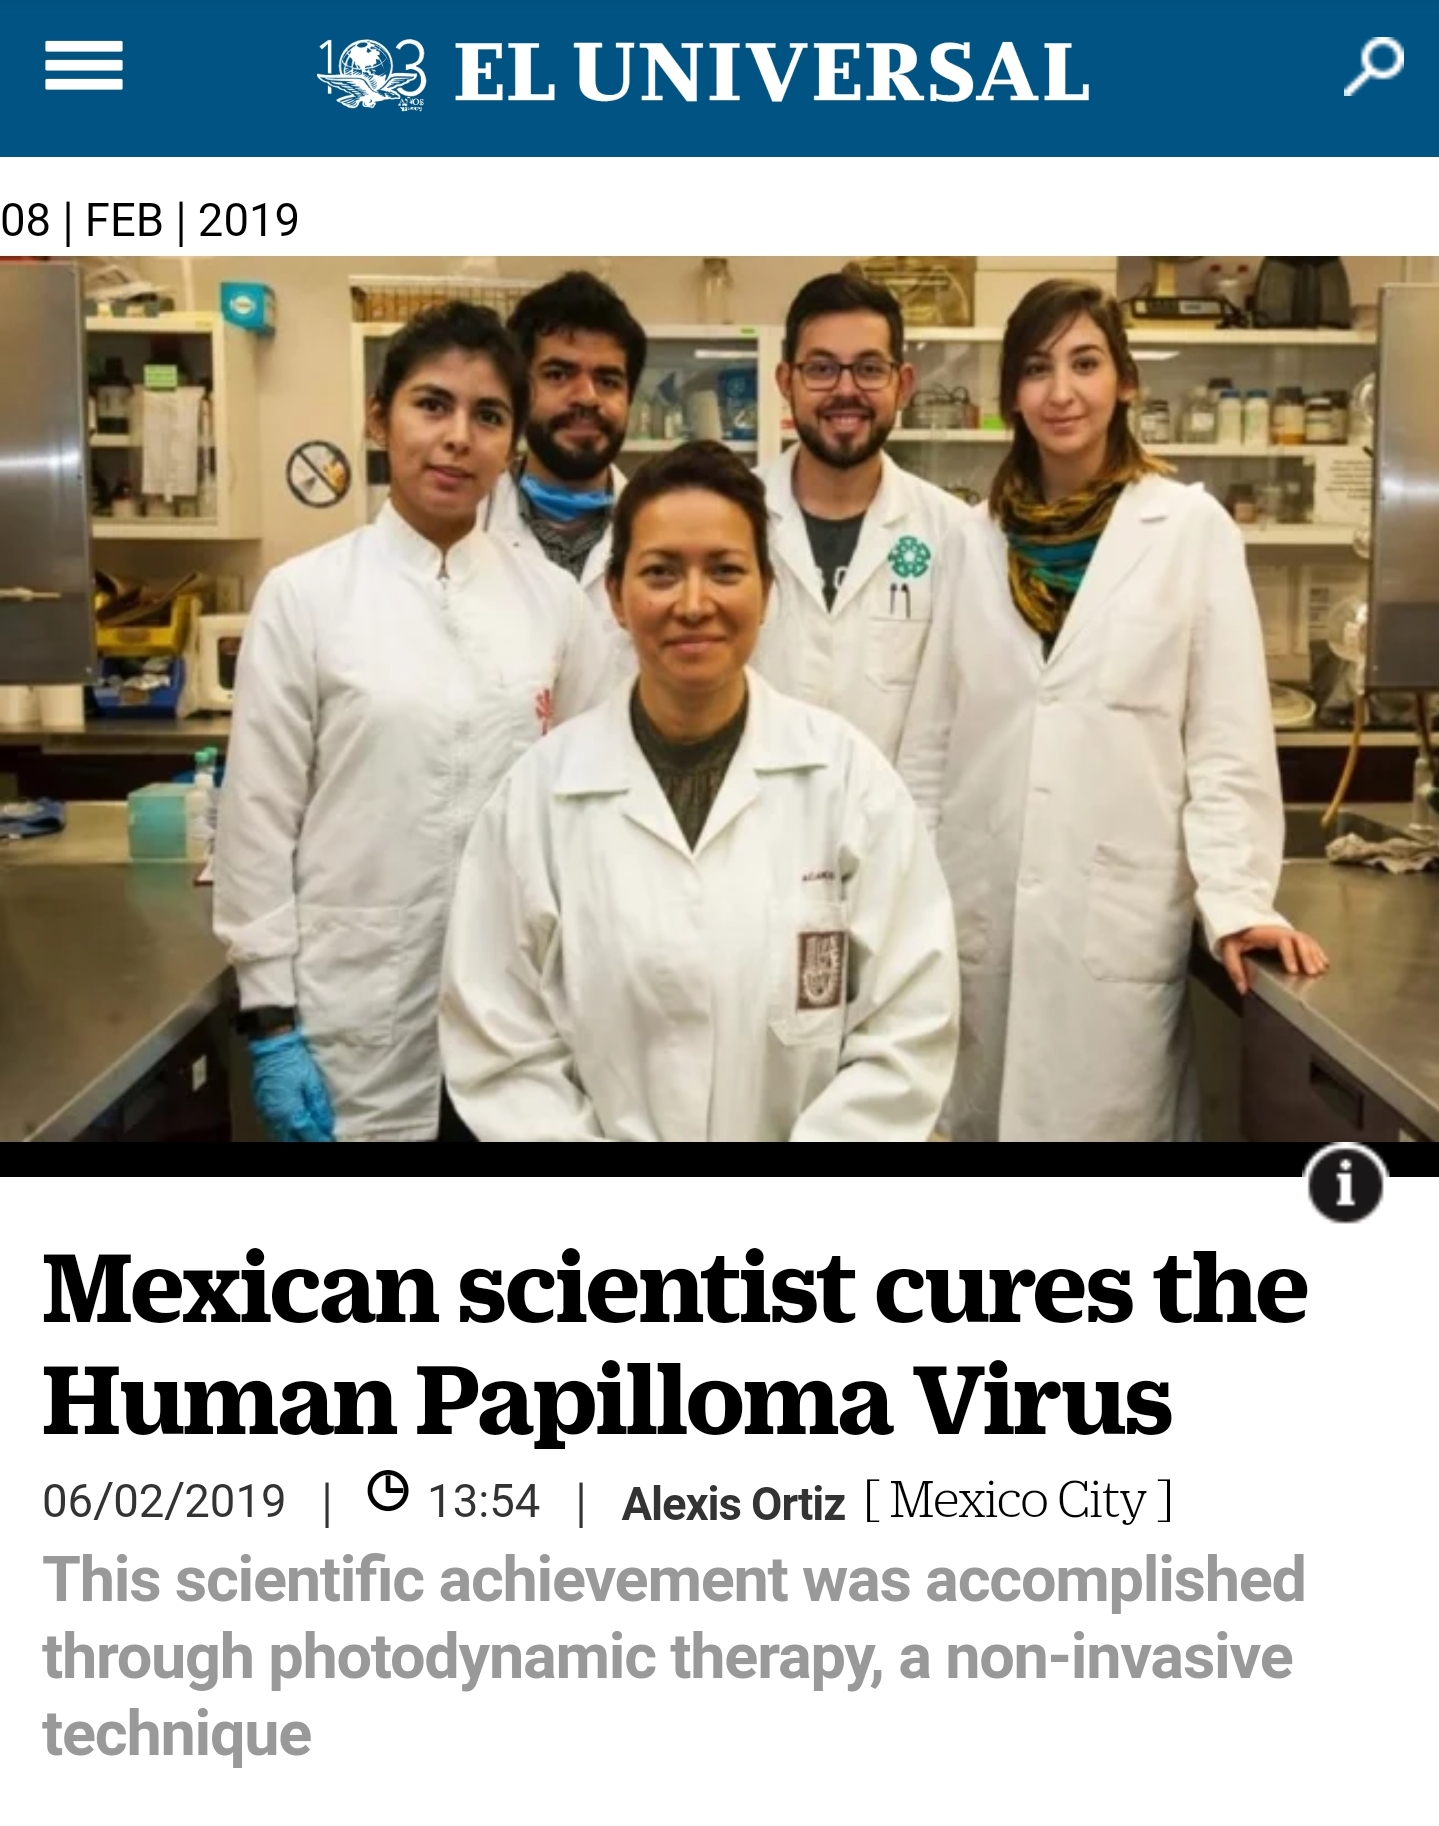 hpv virus cure mexican scientist)